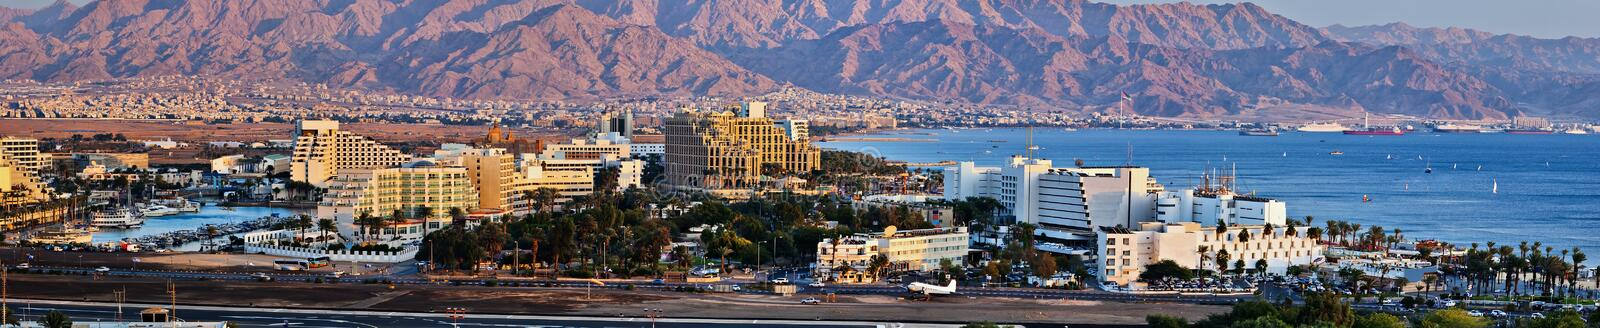 Eilat is a popular resort city in Israel royalty free stock photo